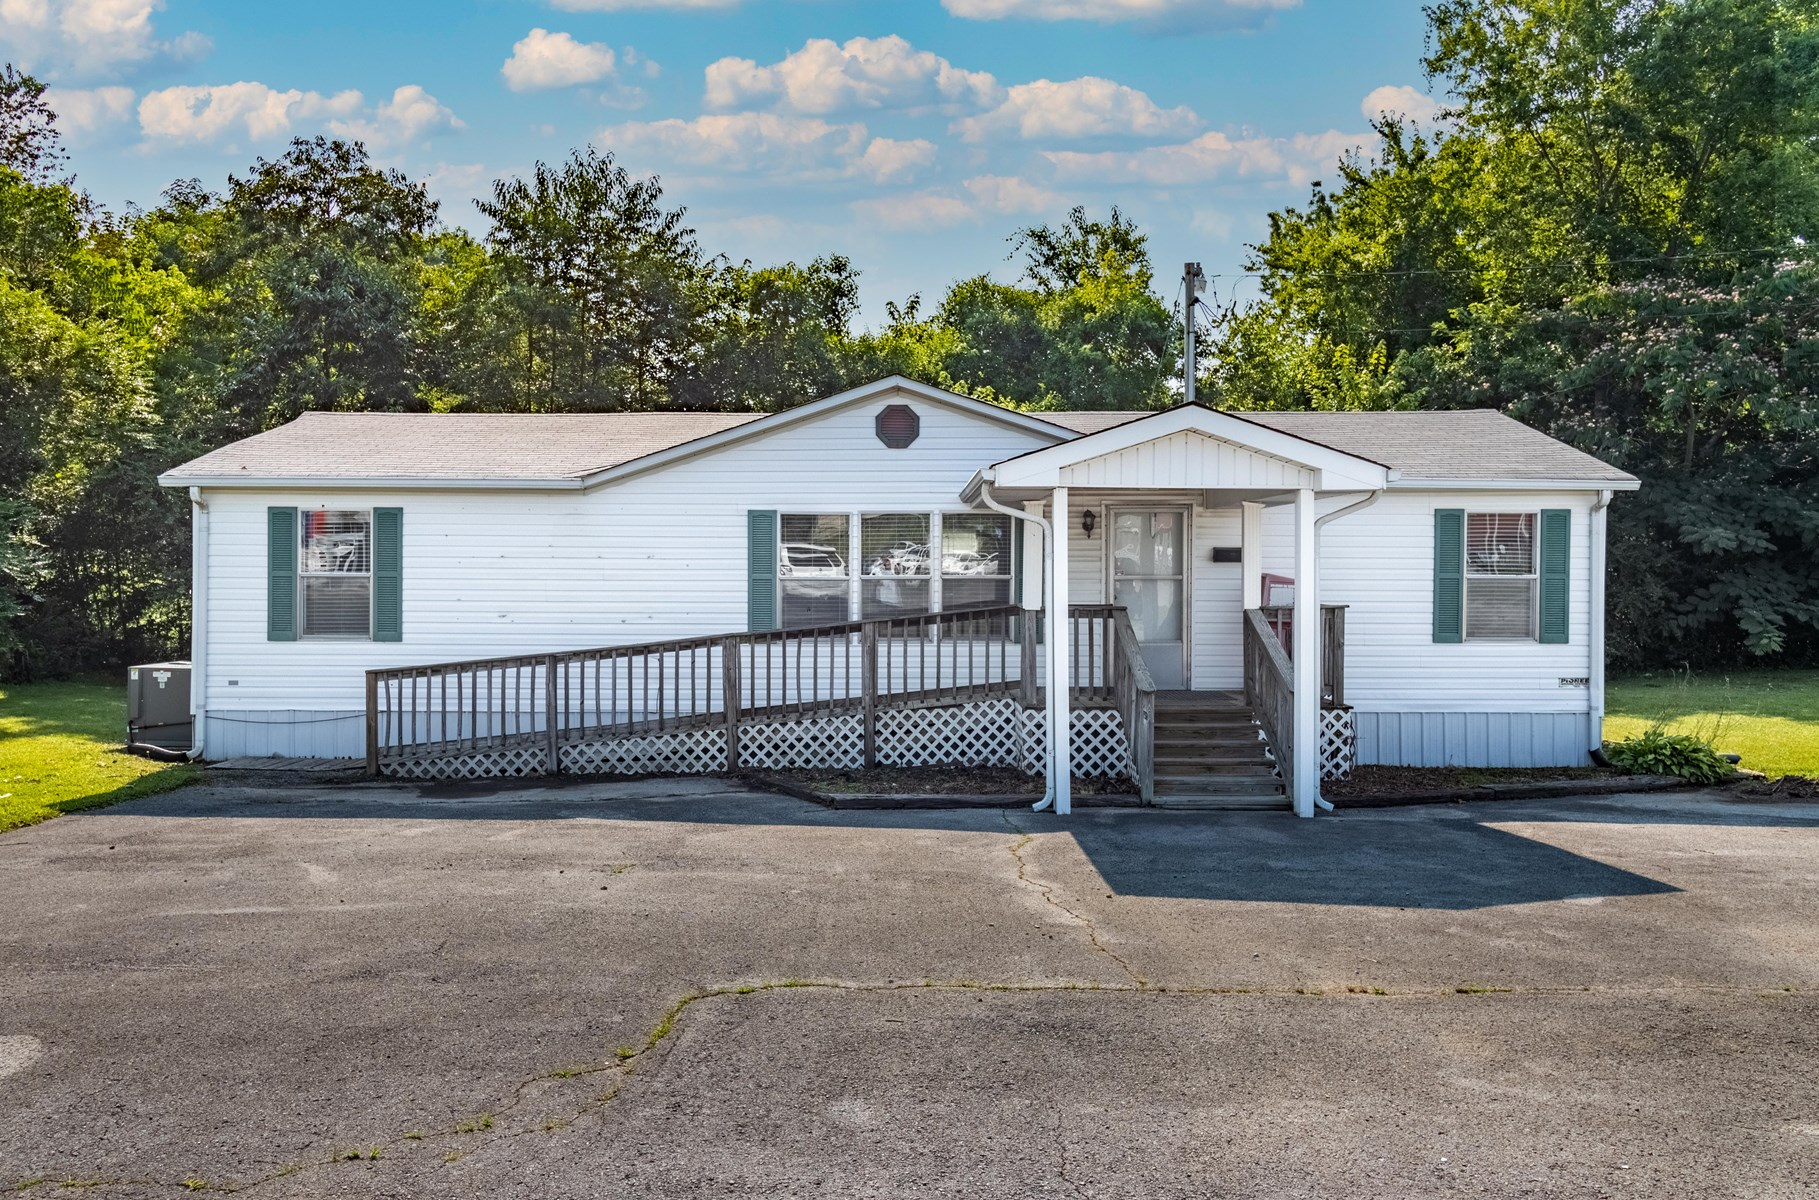 Commercial Building & Lot for Sale in Hohenwald, Tennessee